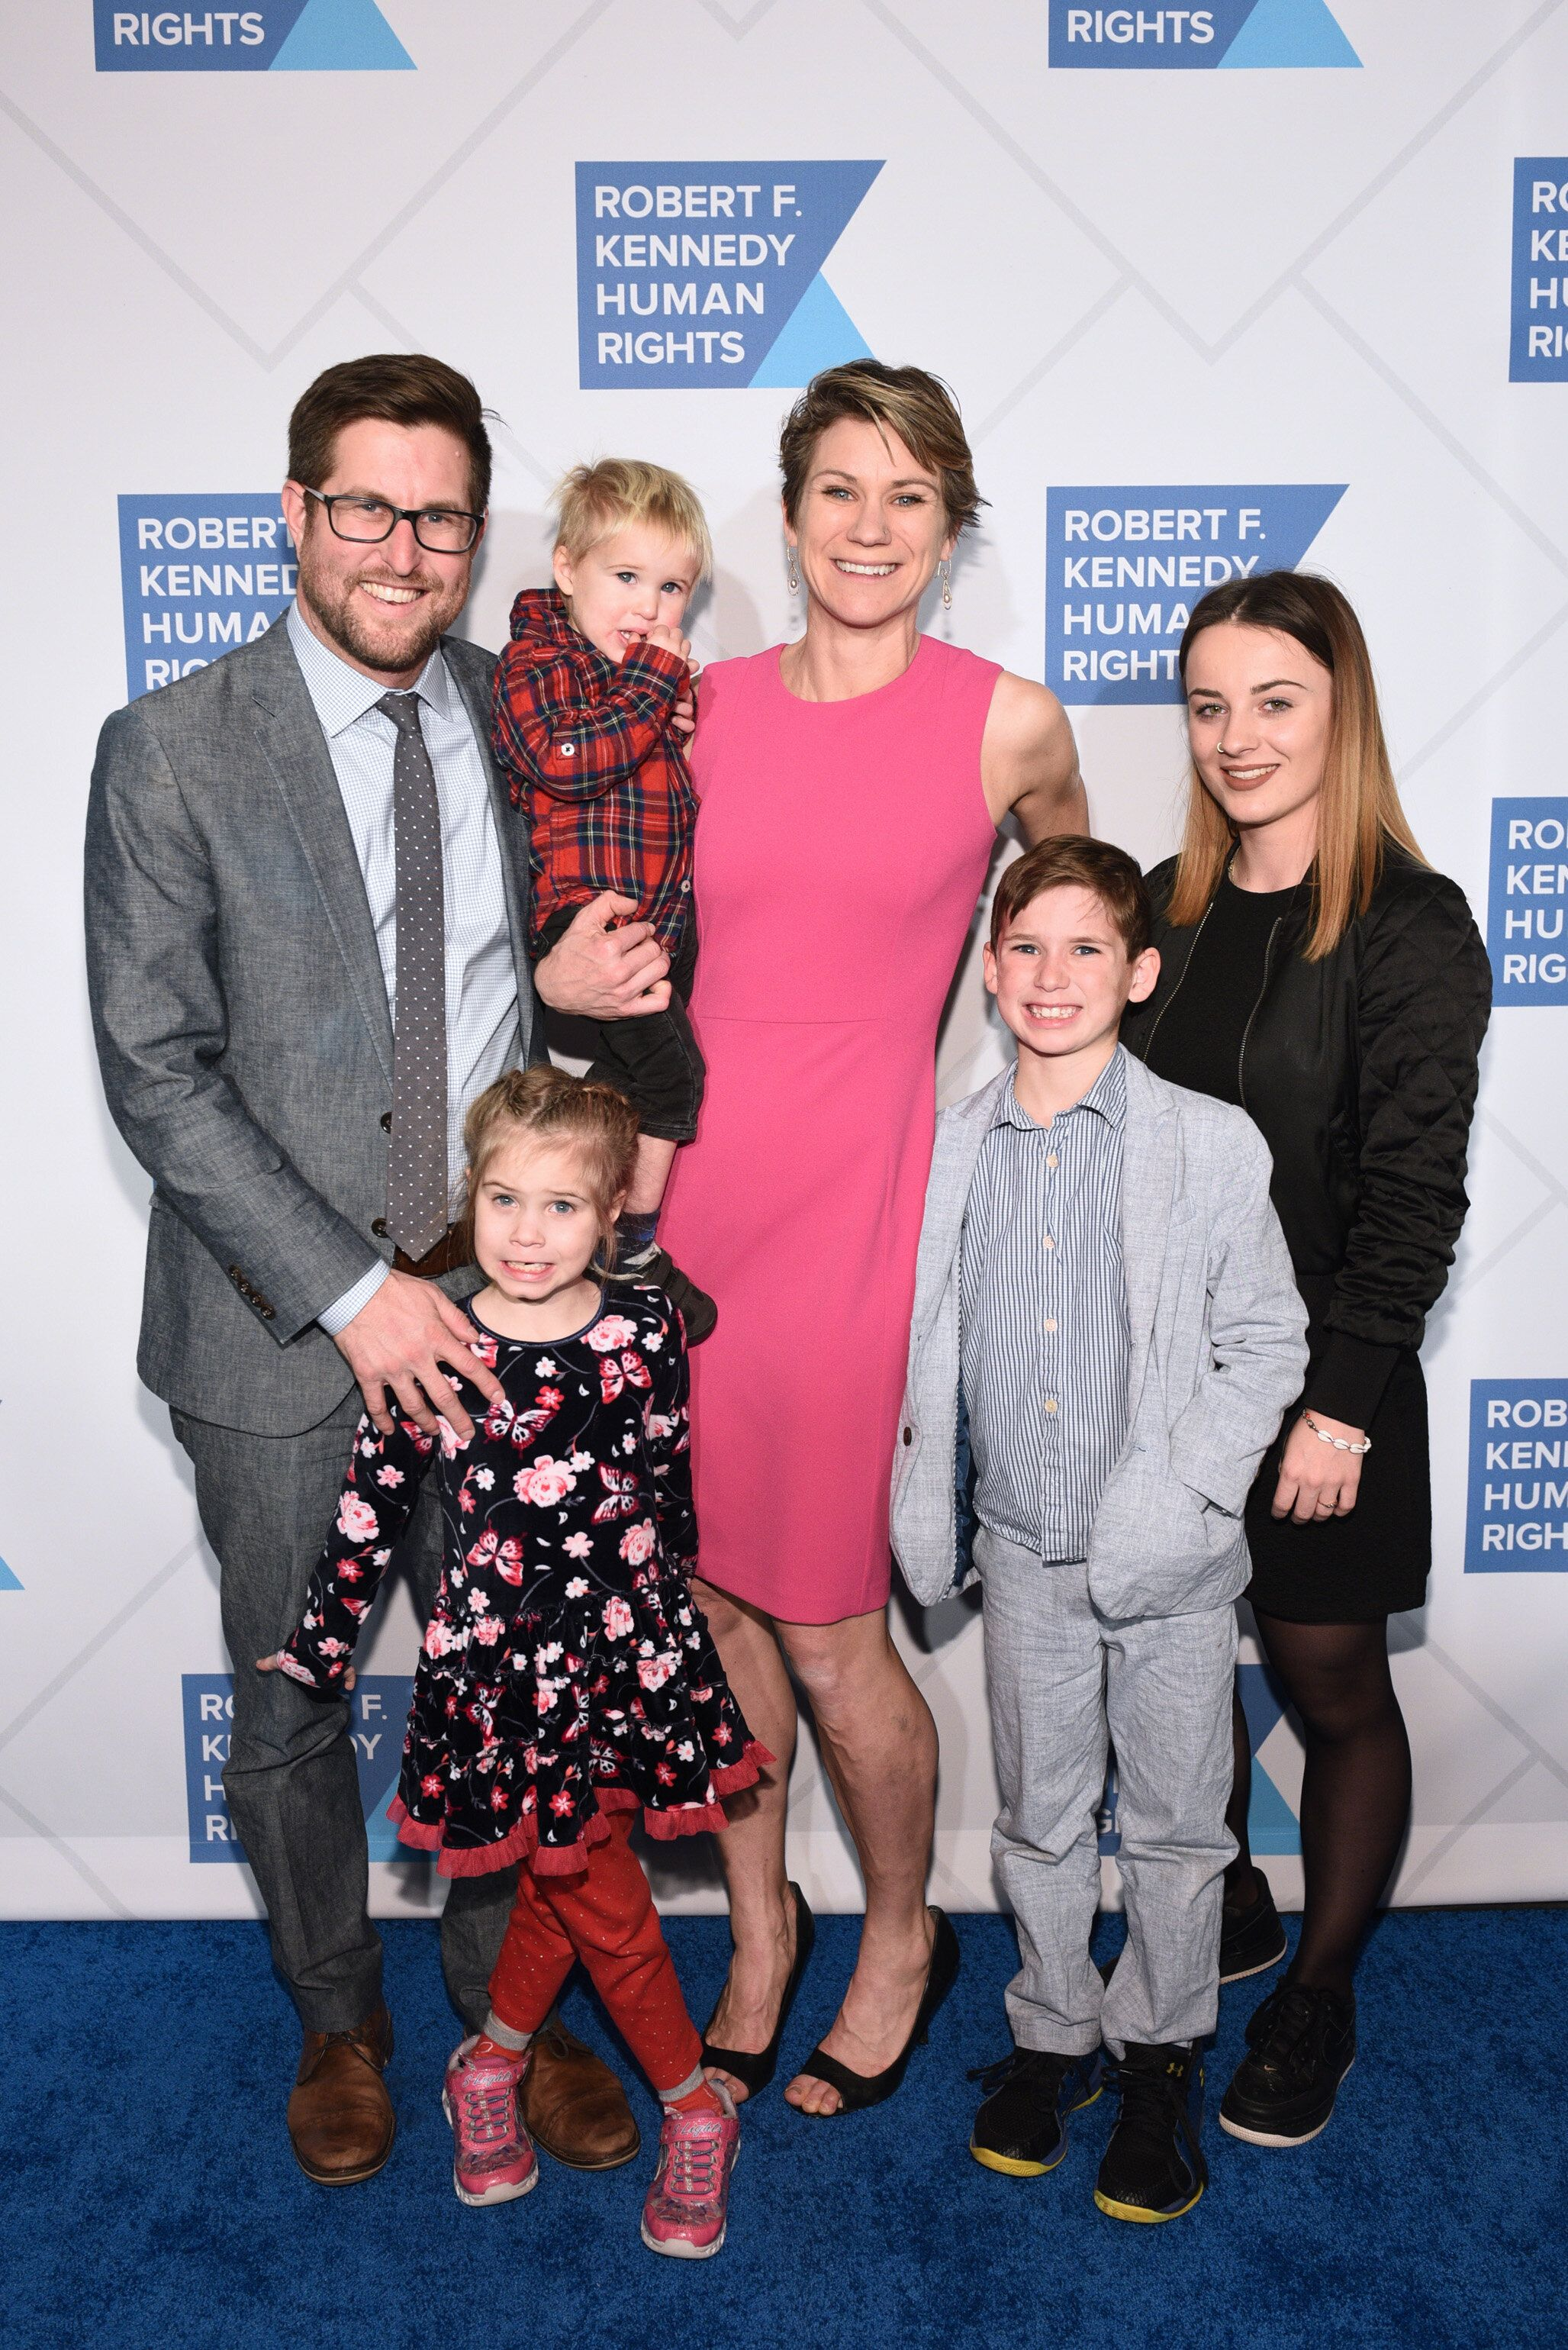 David McKean, Maeve Kennedy Townsend McKean and family at an event in New York City in December 2018.